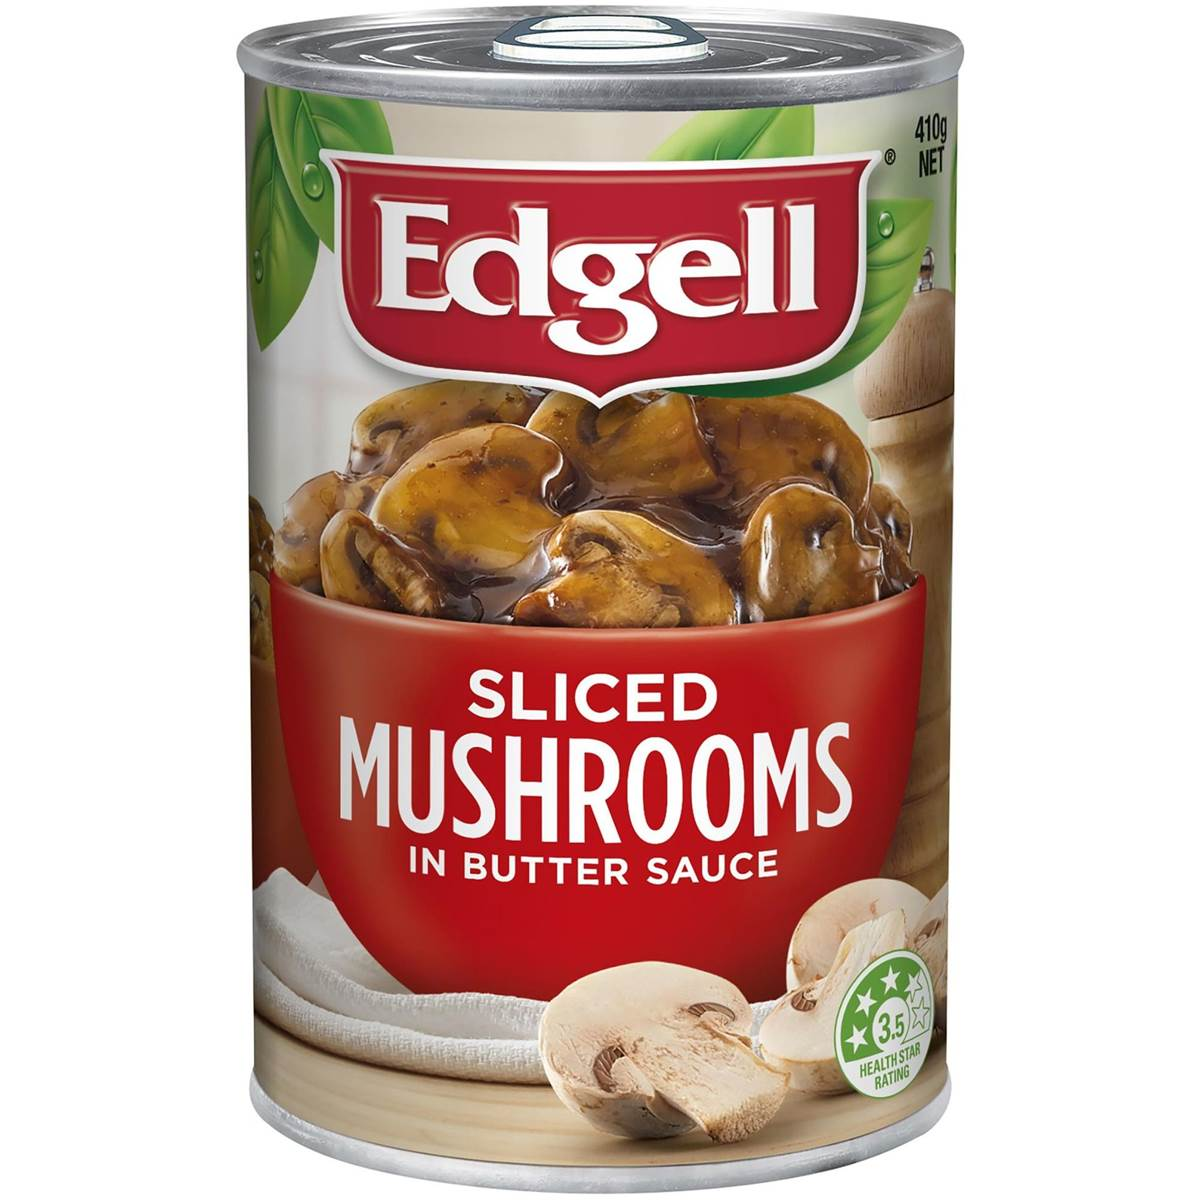 Edgell Sliced Mushrooms in Butter Sauce 410 gram